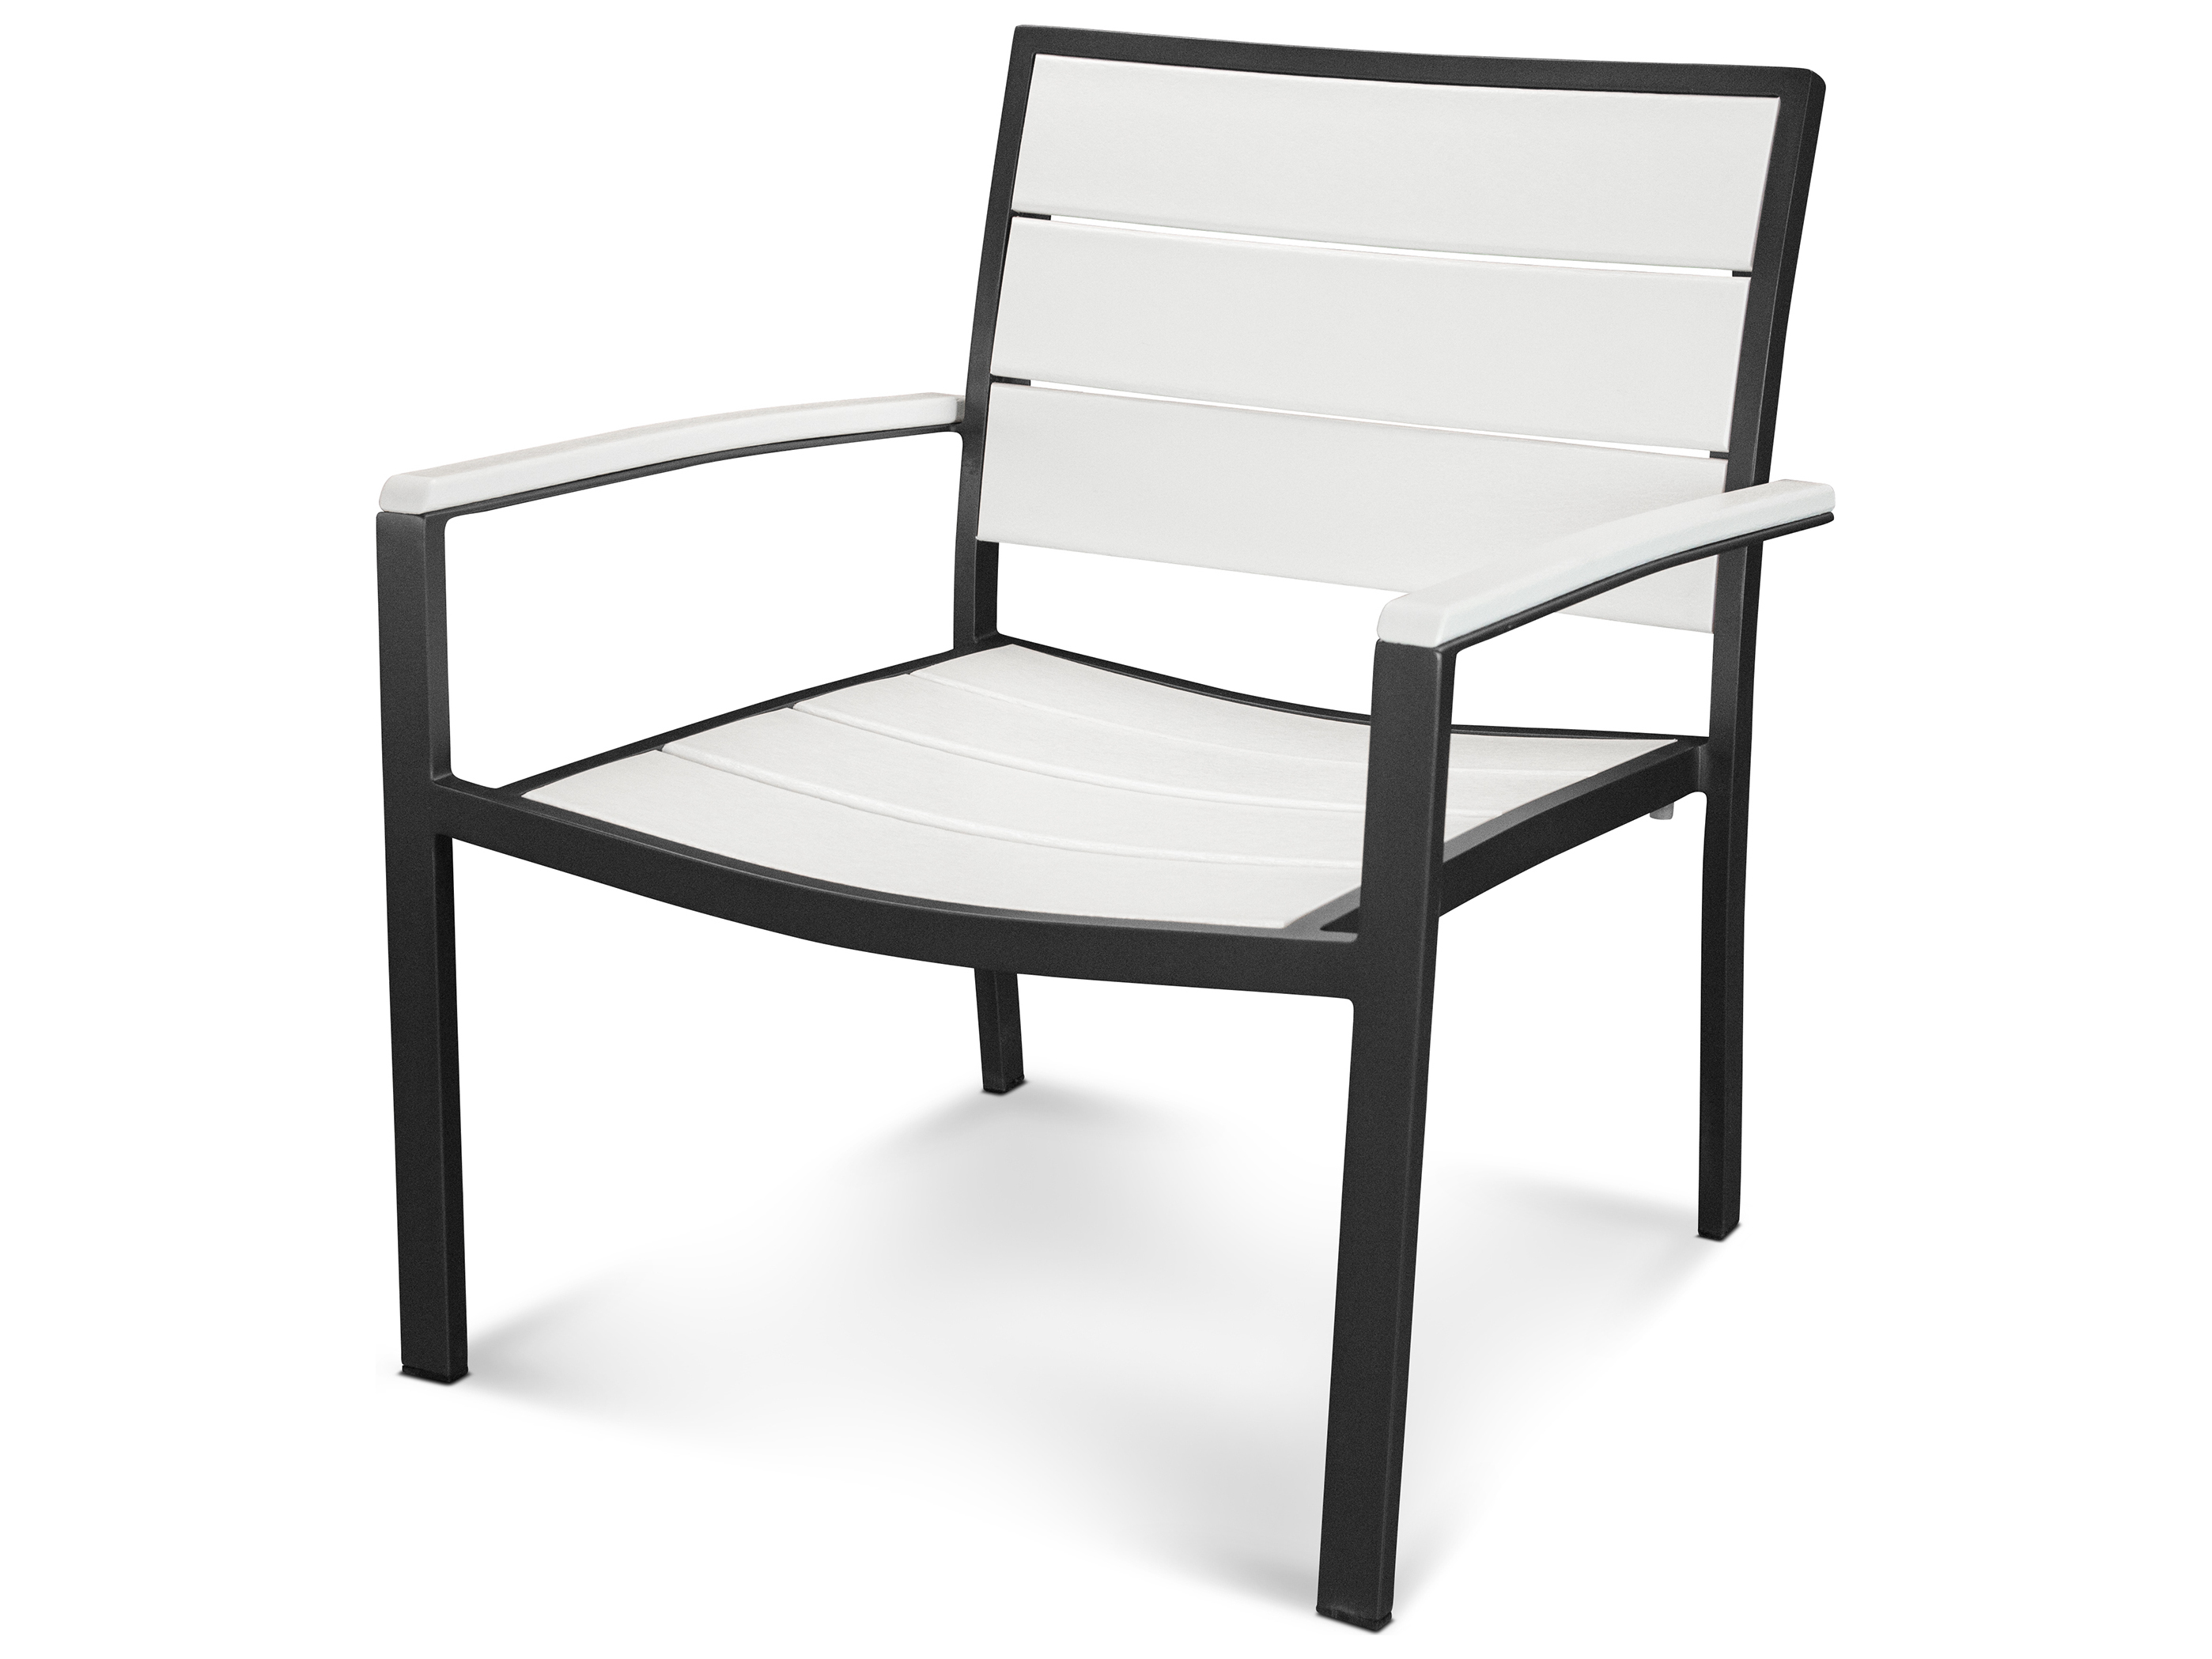 Trex Surf City Recycled Plastic Lounge Chair